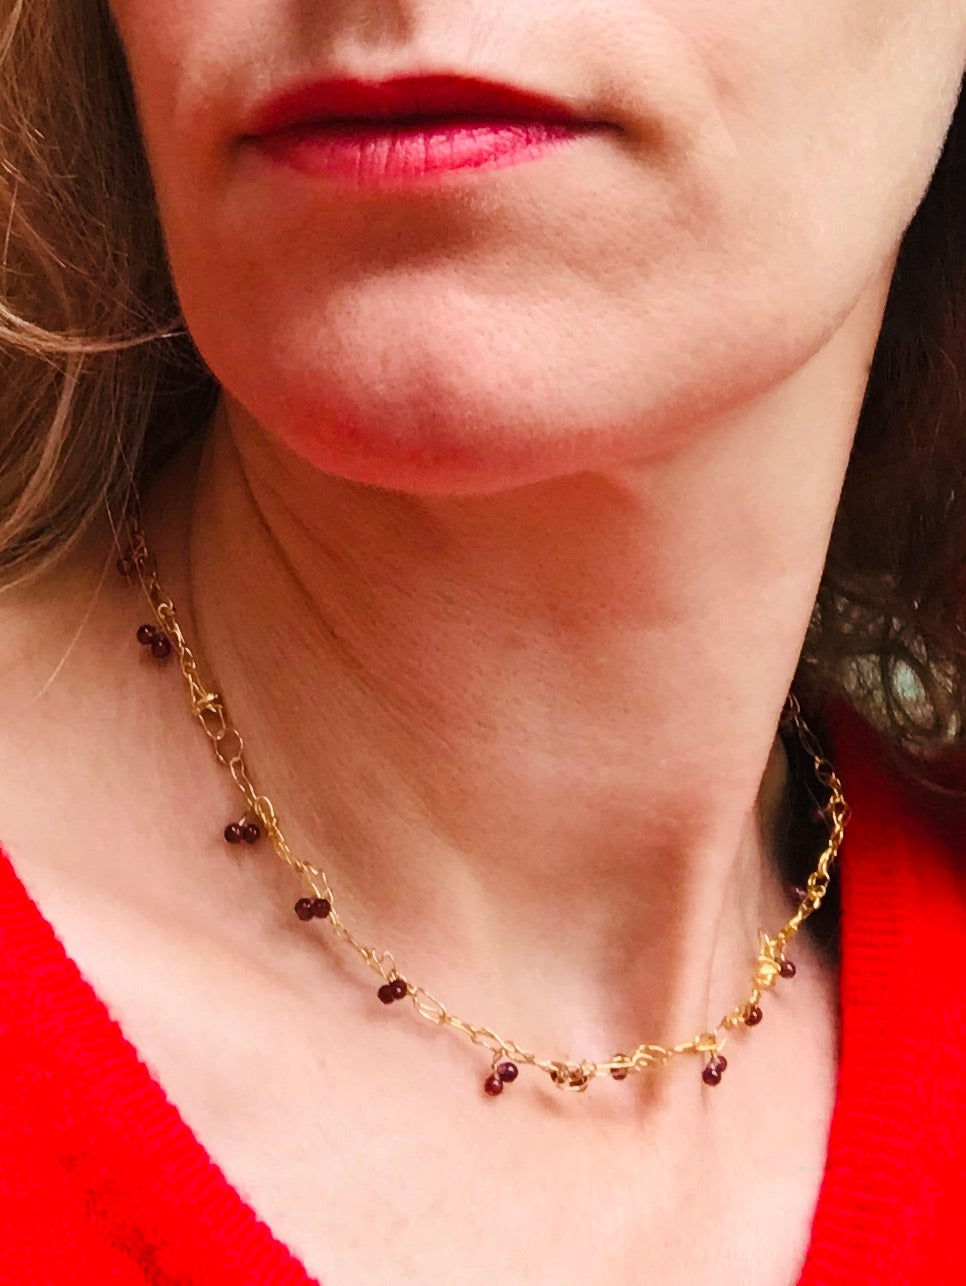 Image of 'Intertwined' ketting in goud en granaat / necklace in 24 kt gold and garnets